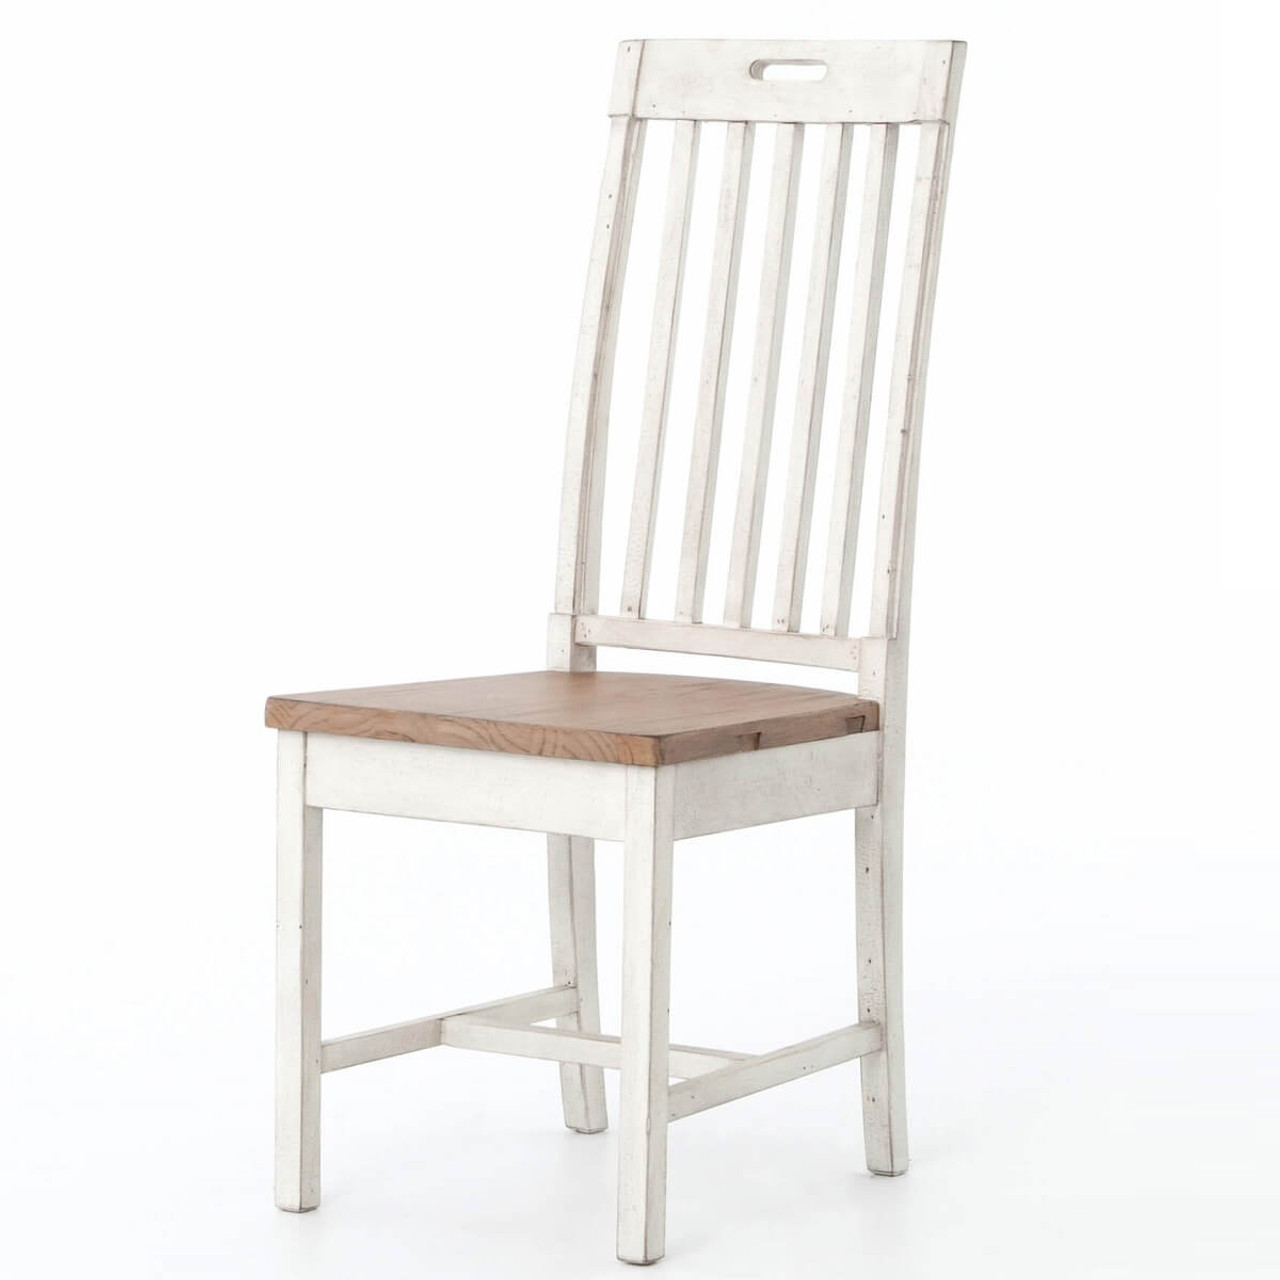 Cintra Rustic White Wood Dining Room Chair